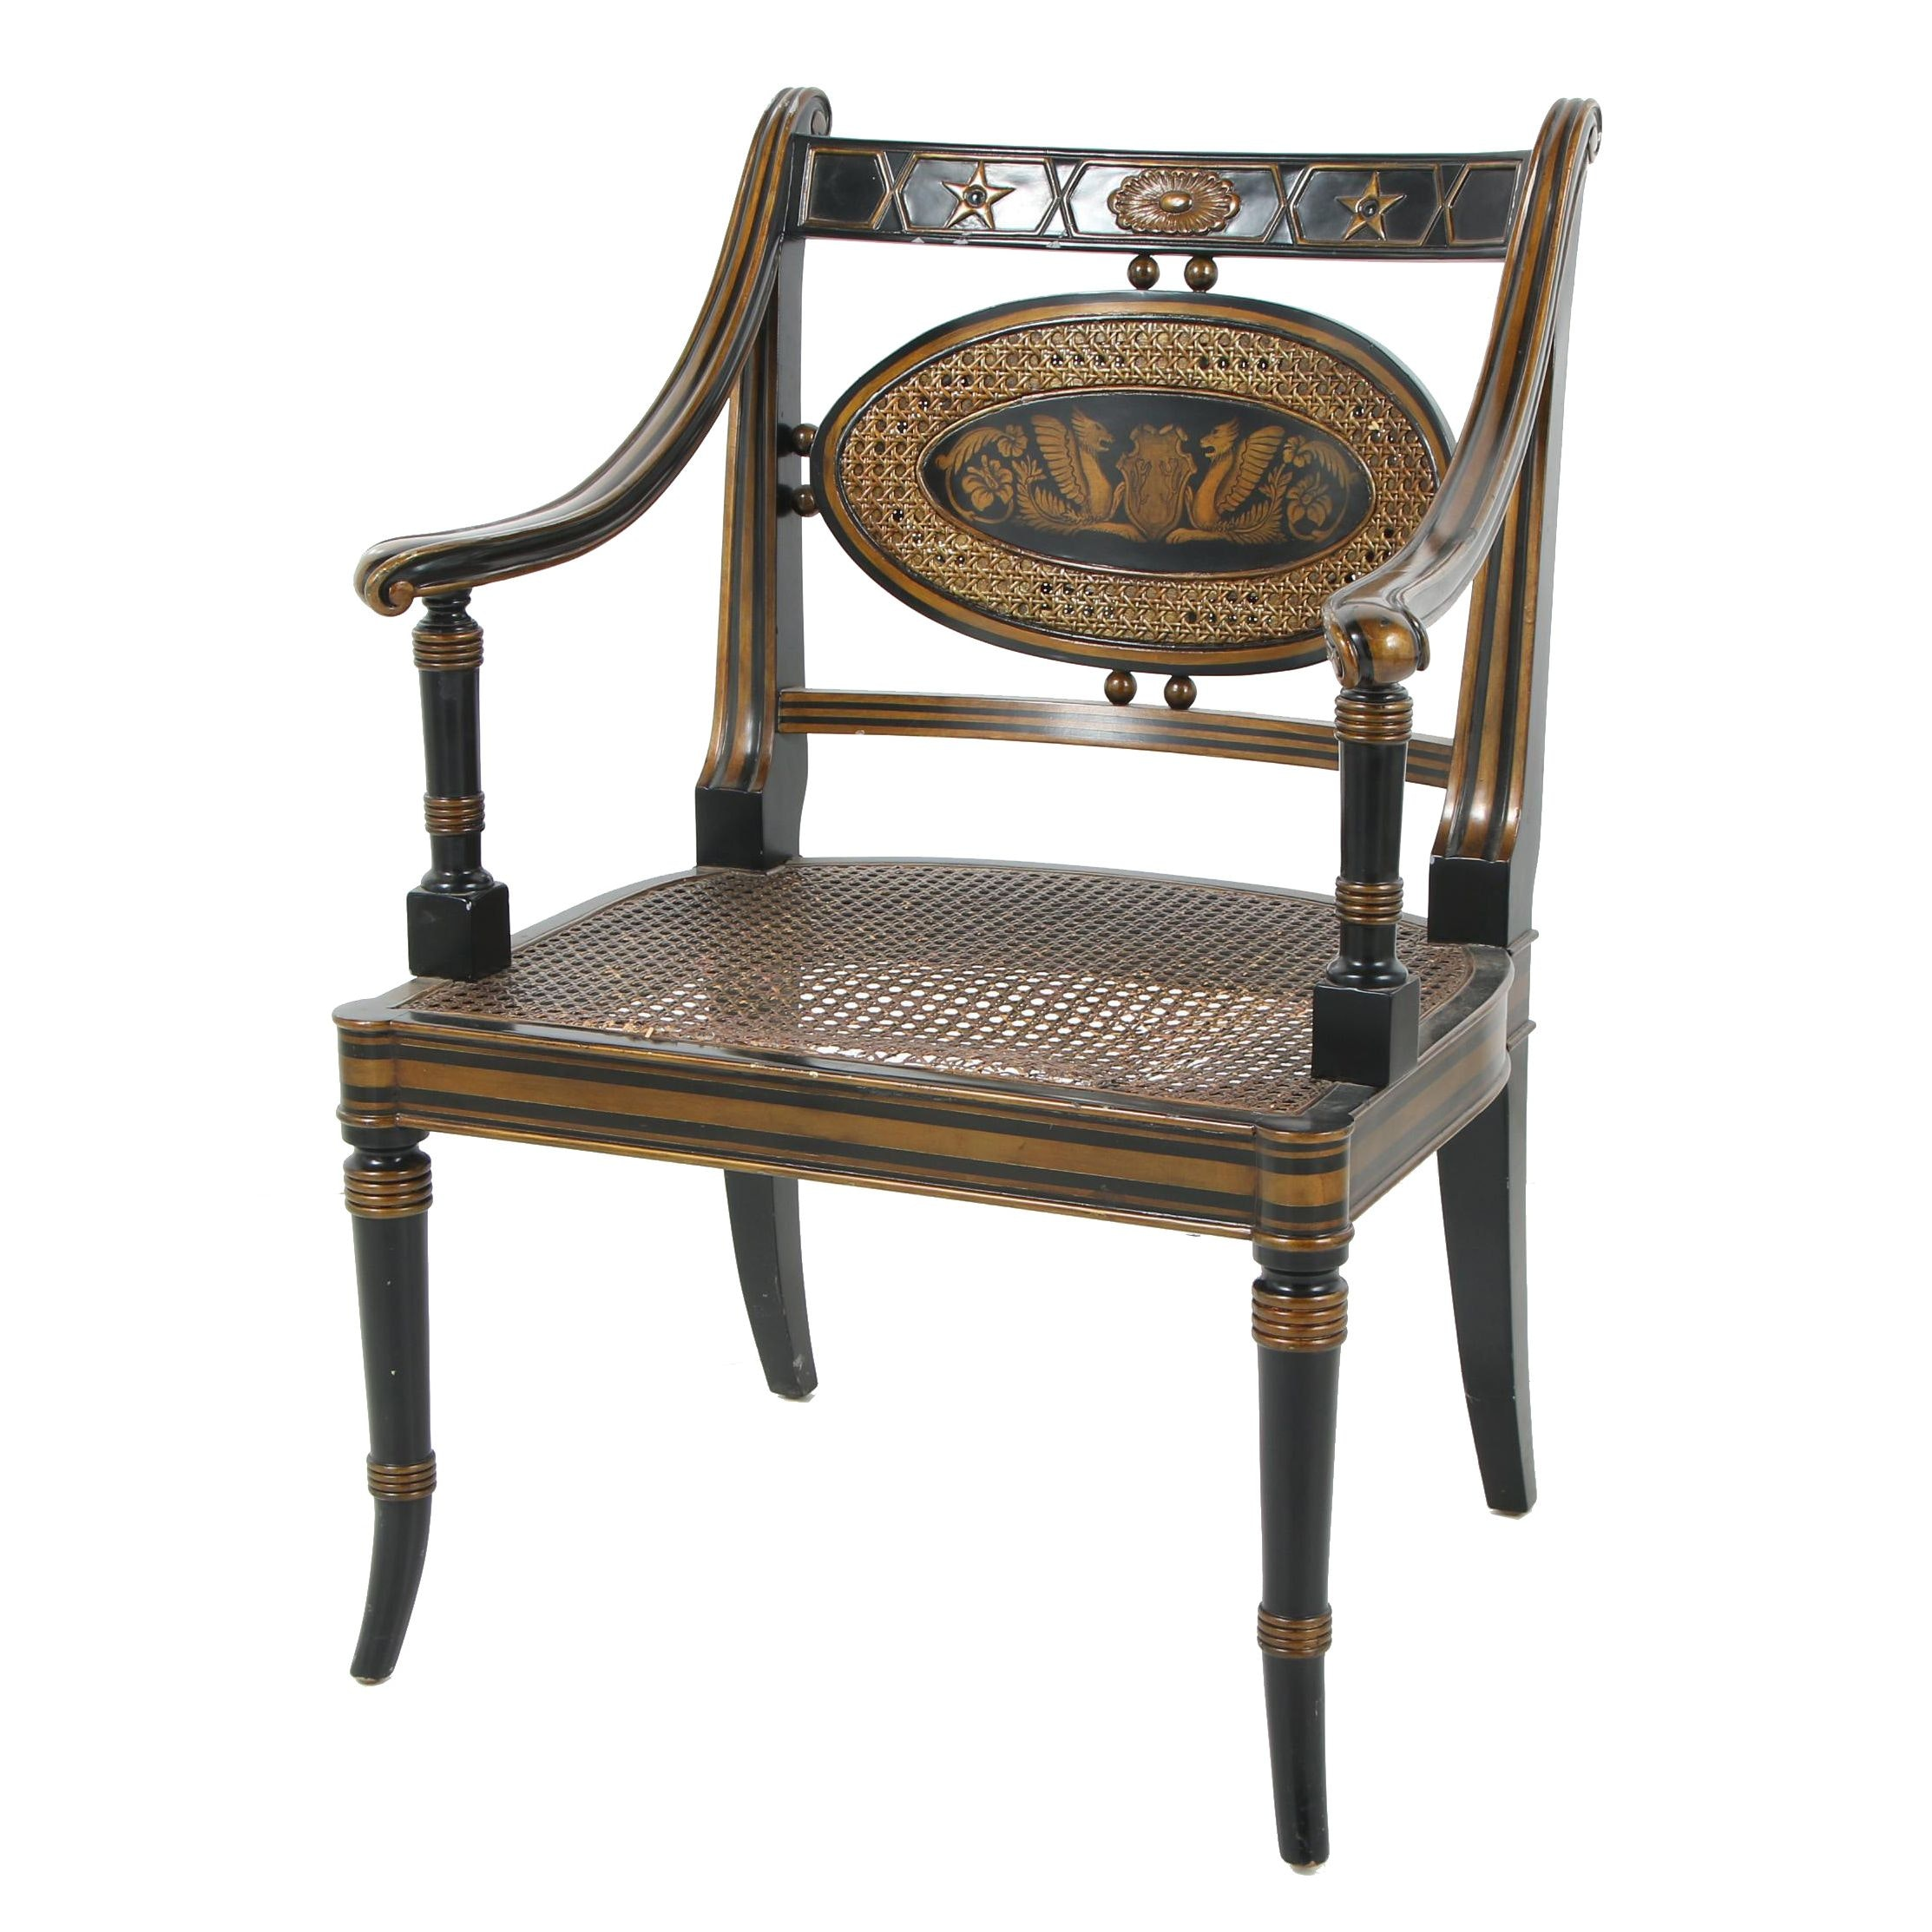 Sheraton Hitchcock Style Cane Seat Armchair Featuring Dragon Motif, Contemporary